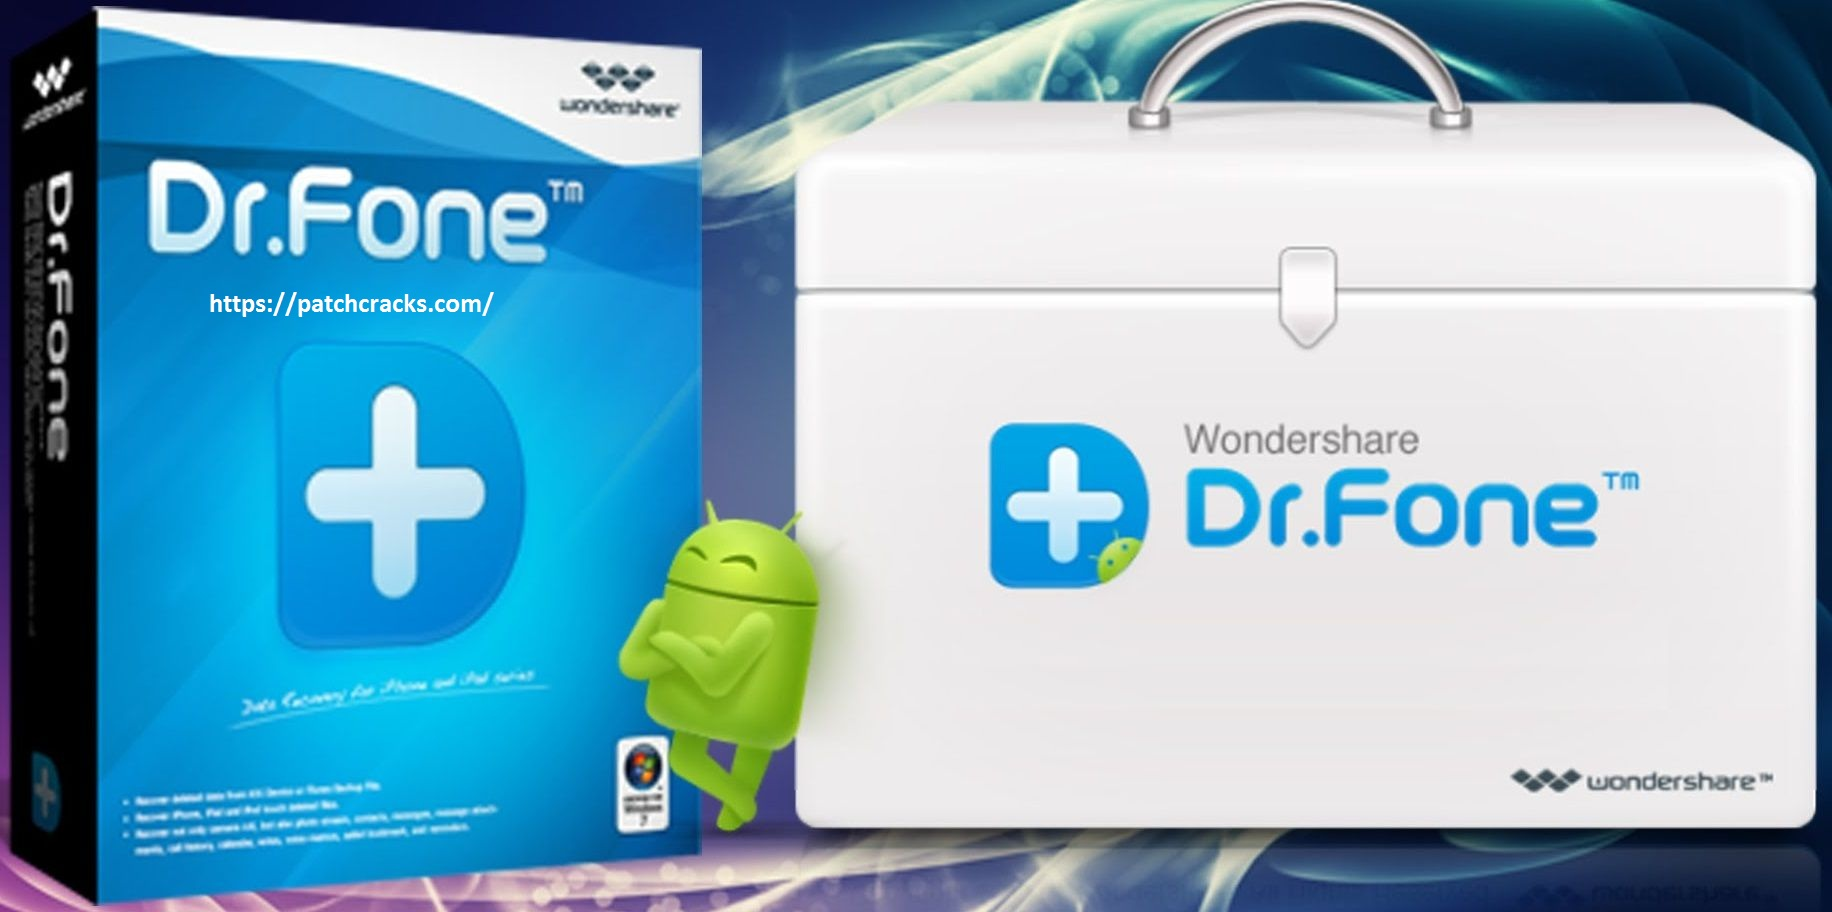 WonderShare Dr.Fone Toolkit 11 Crack Activation Code For Android iOS